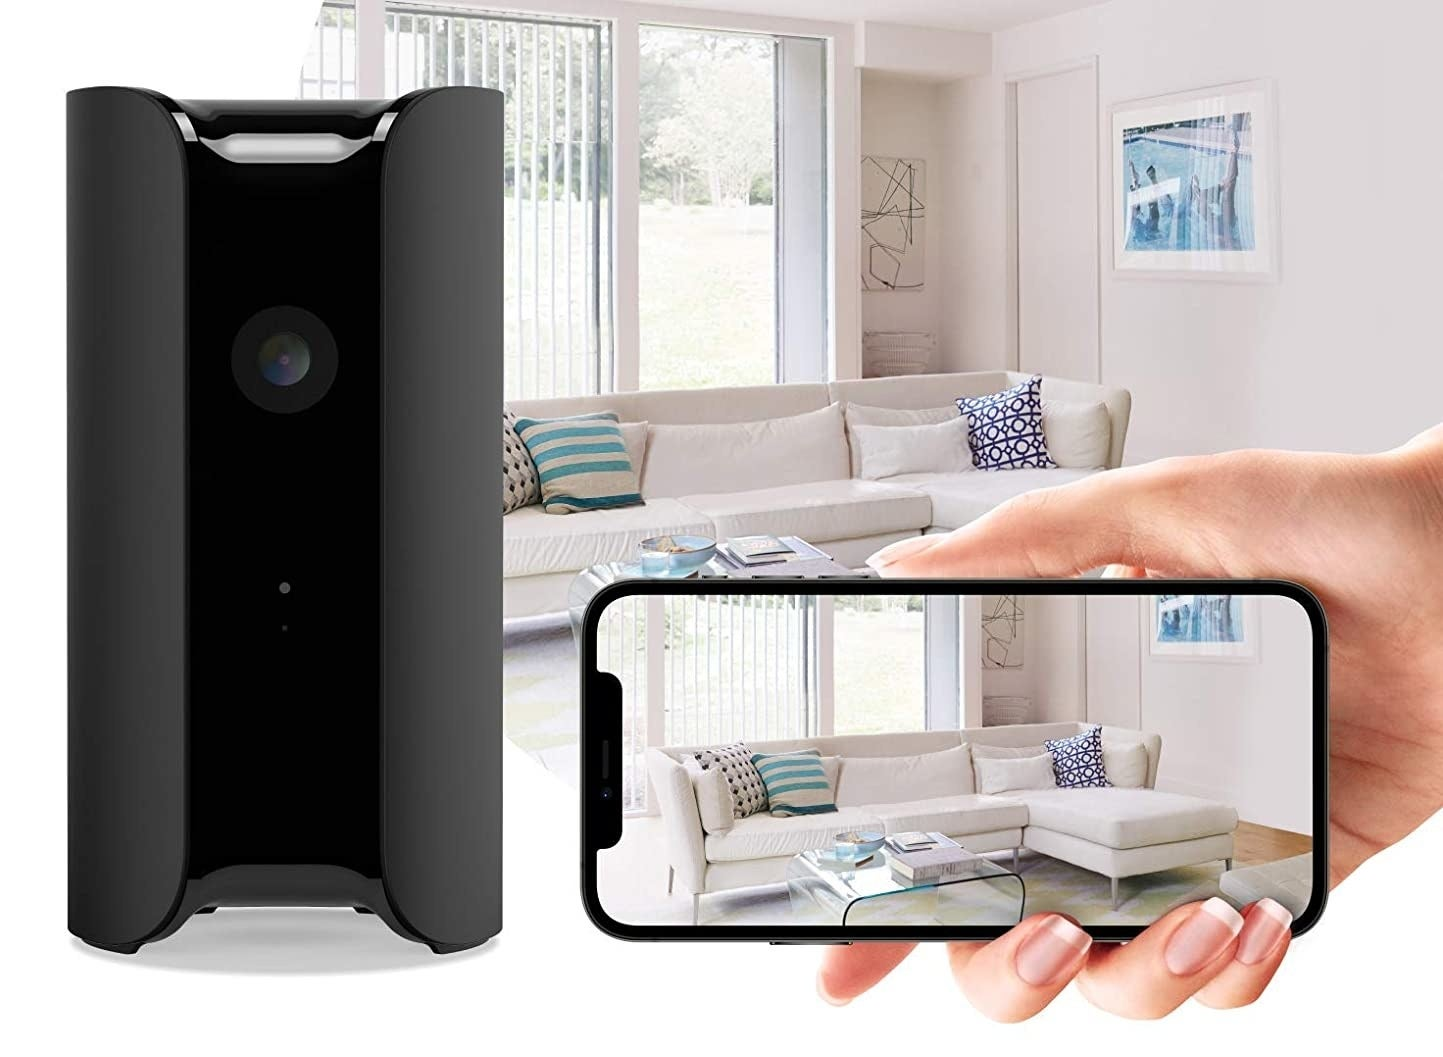 the security camera next to an iphone